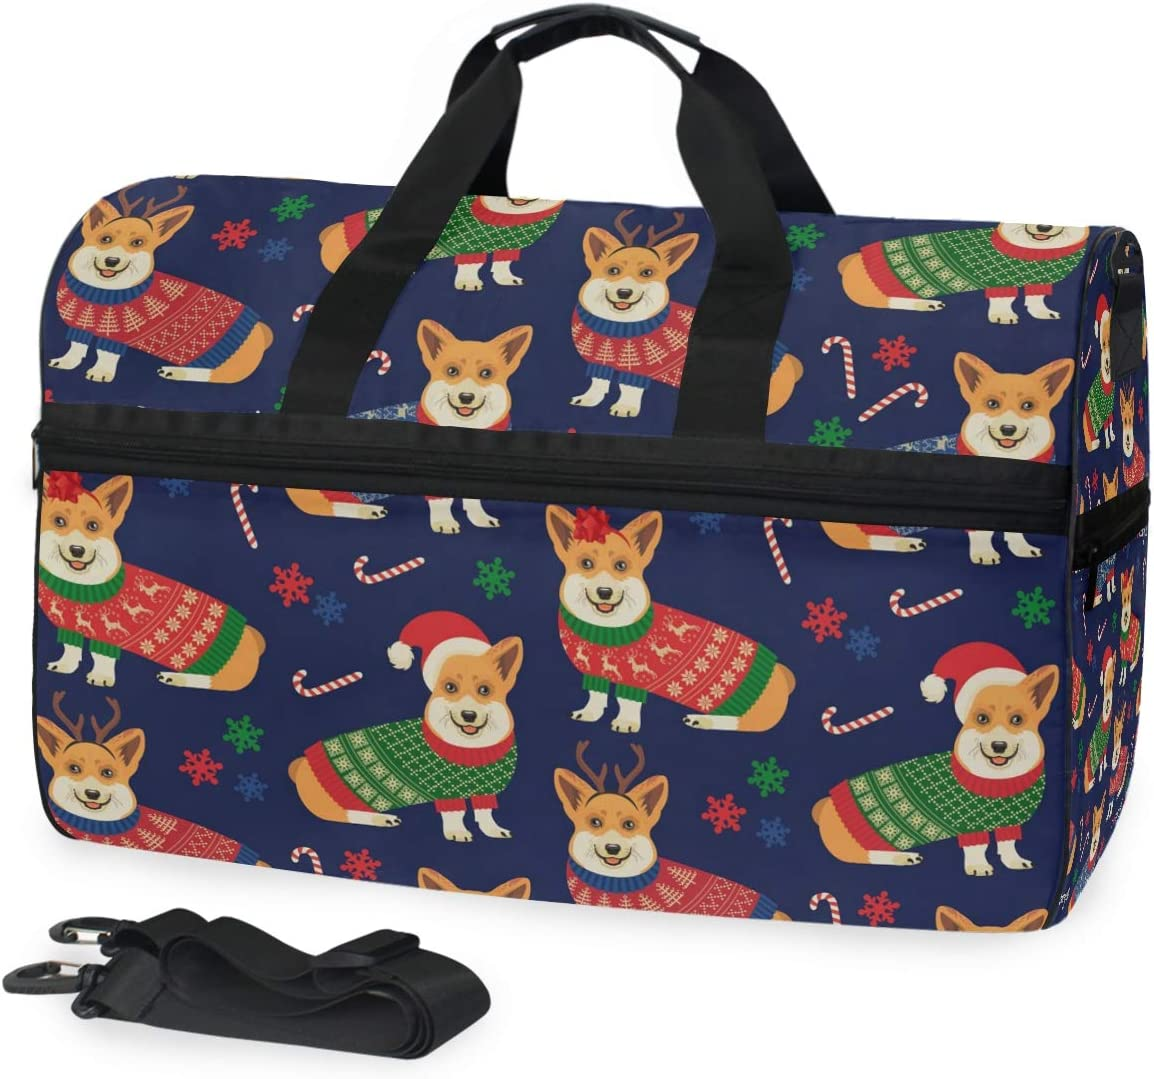 Corgis Dogs Sports Gym Bag with Shoes Compartment Travel Duffel Bag for Men and Women